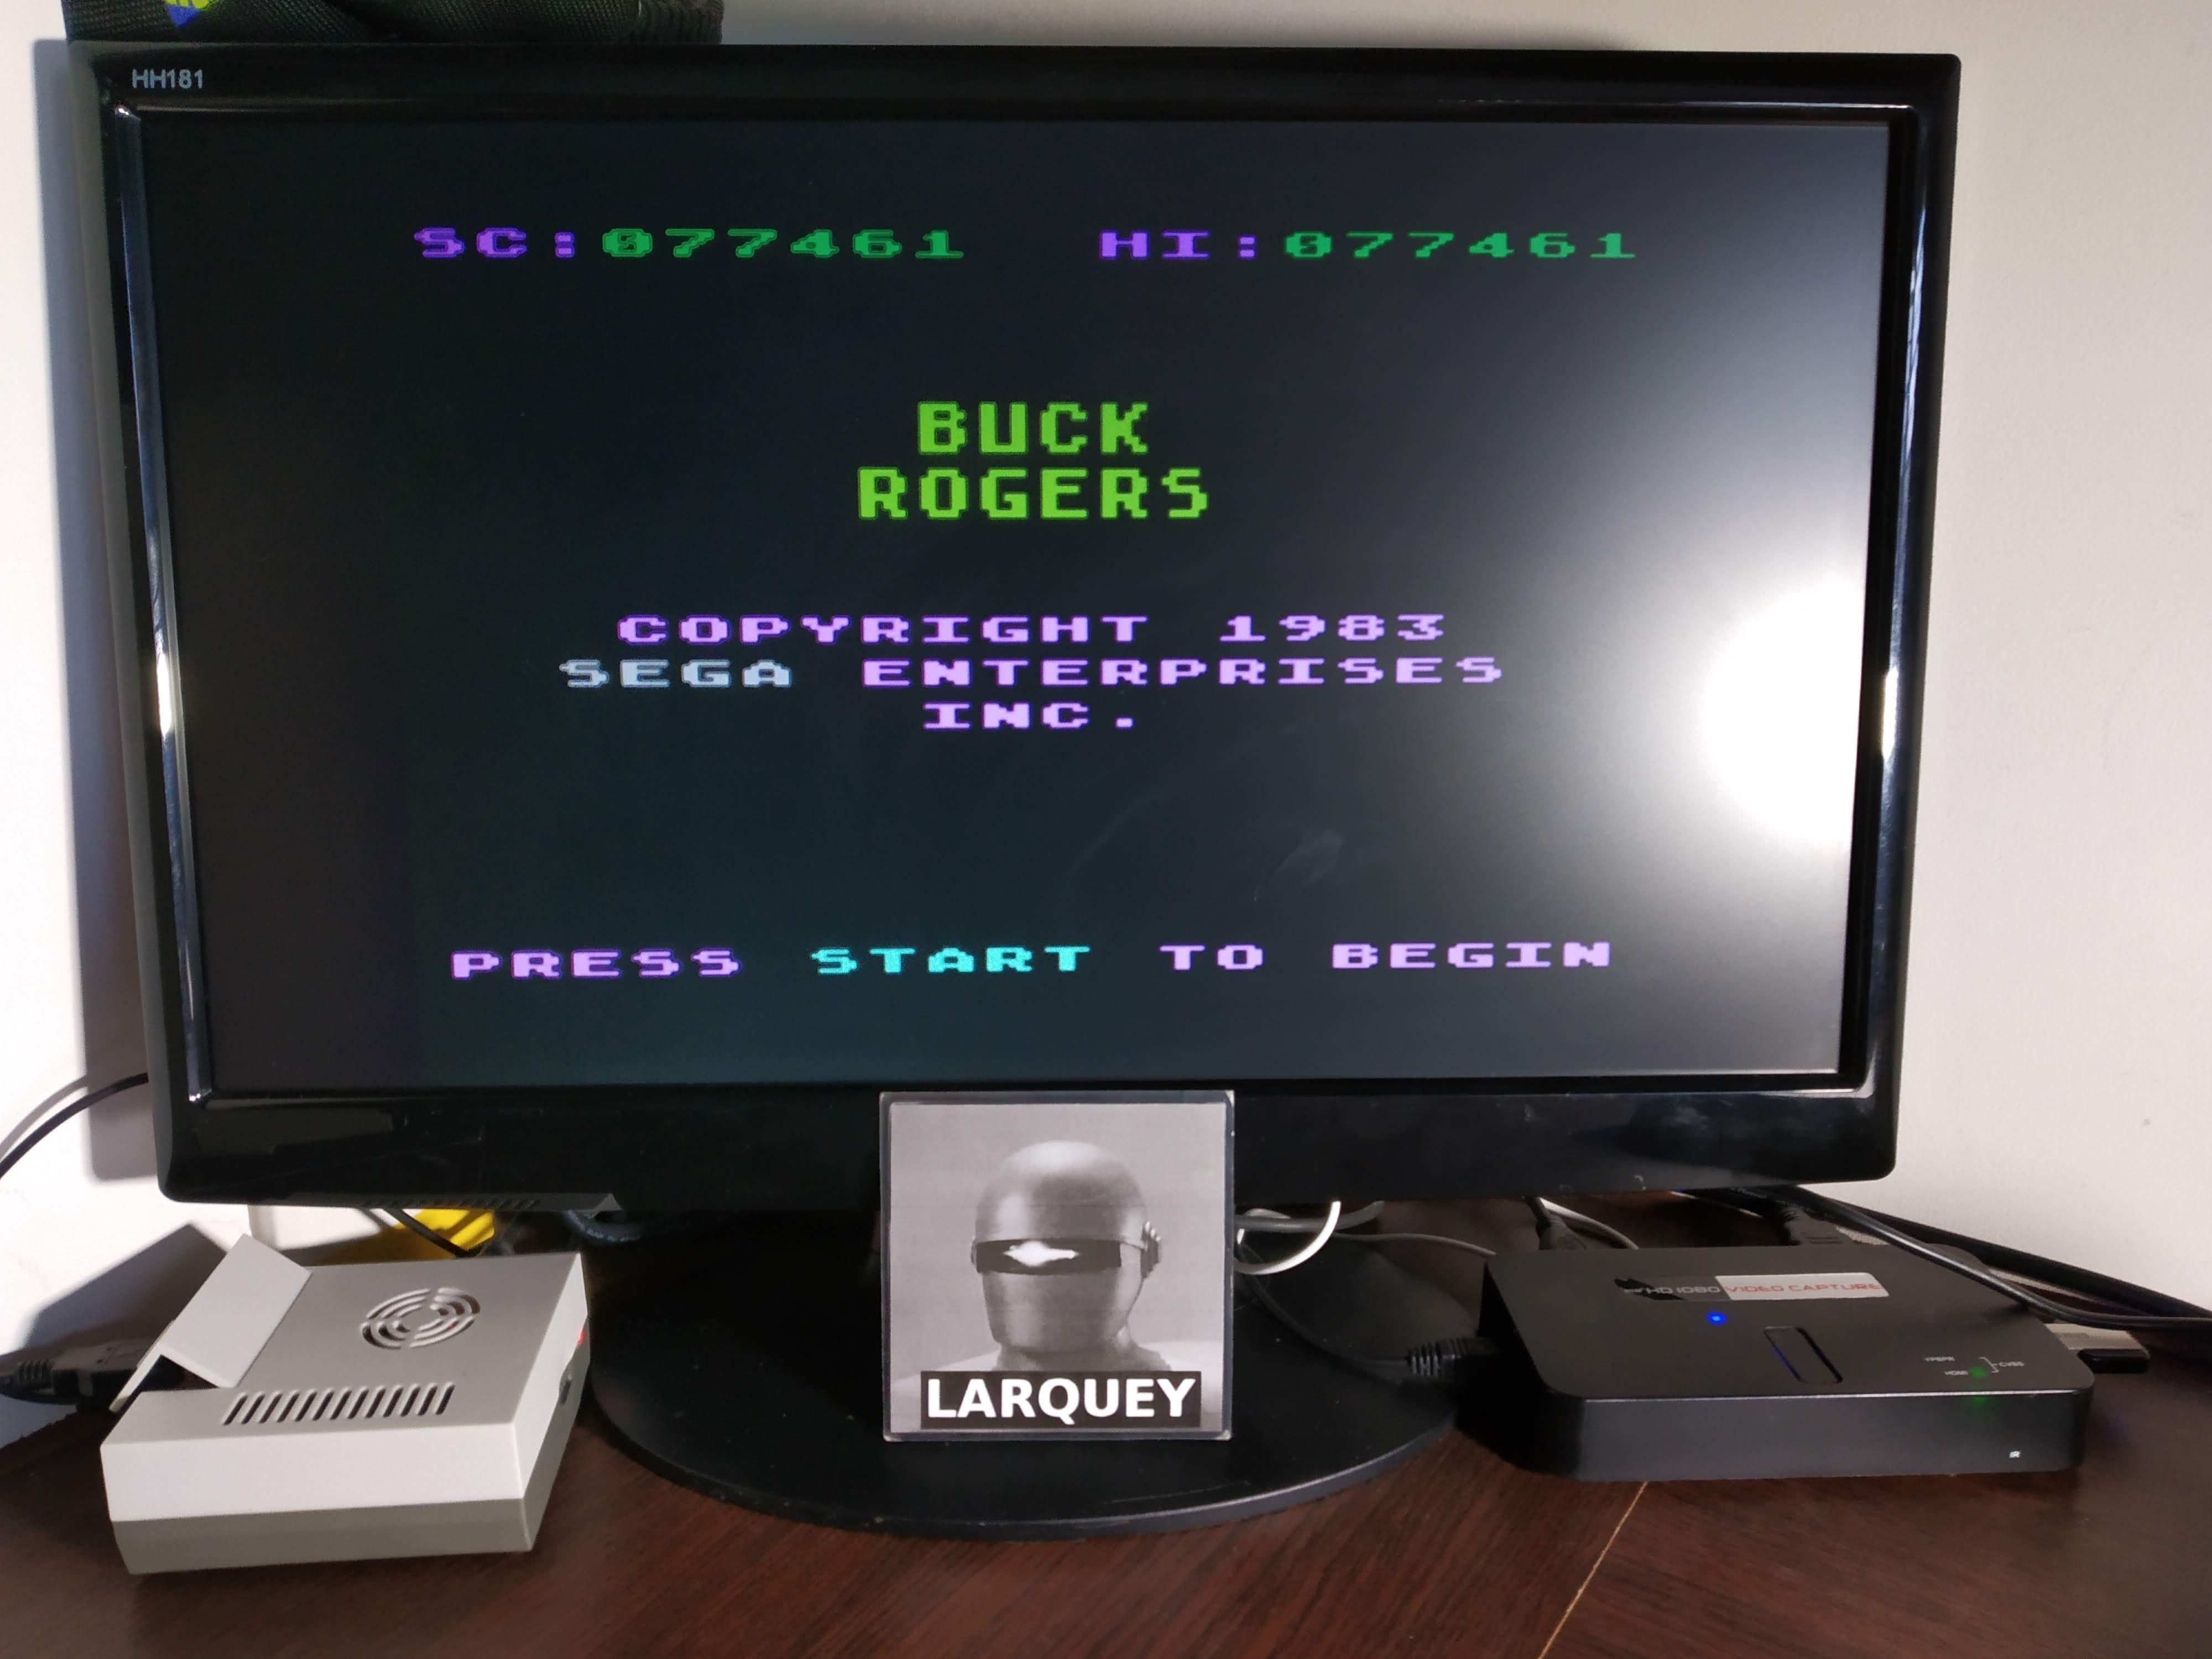 Larquey: Buck Rogers: Planet of Zoom (Atari 5200 Emulated) 77,461 points on 2019-11-09 07:53:43